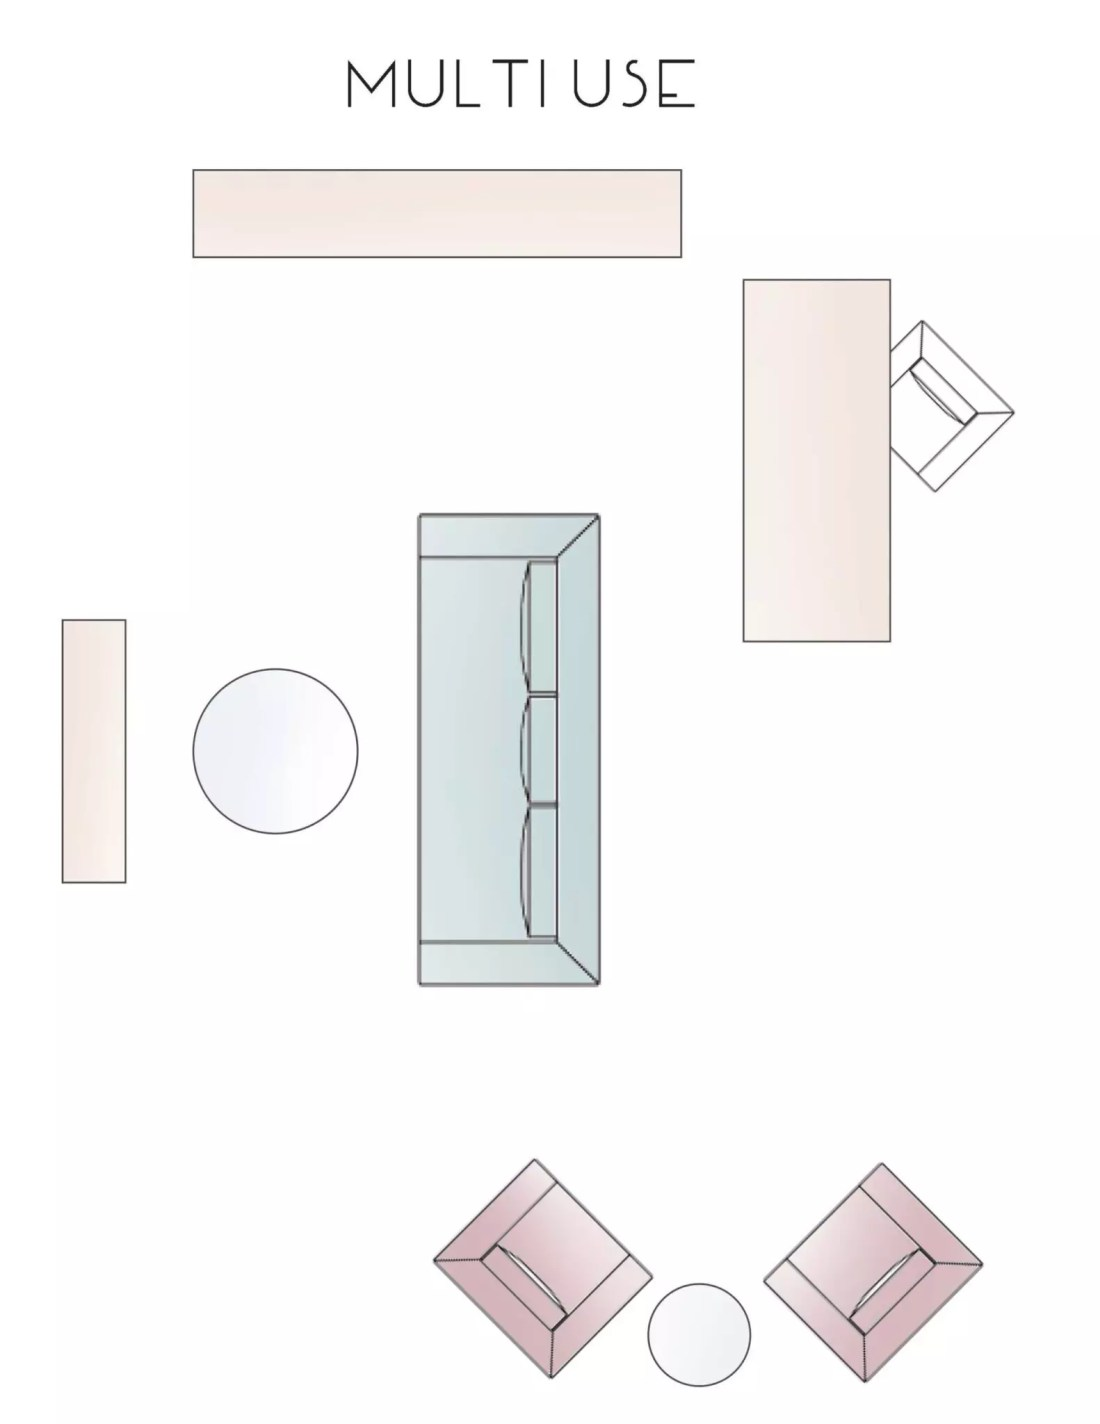 Multi Use Living Room Layout Option - Catherine French Design